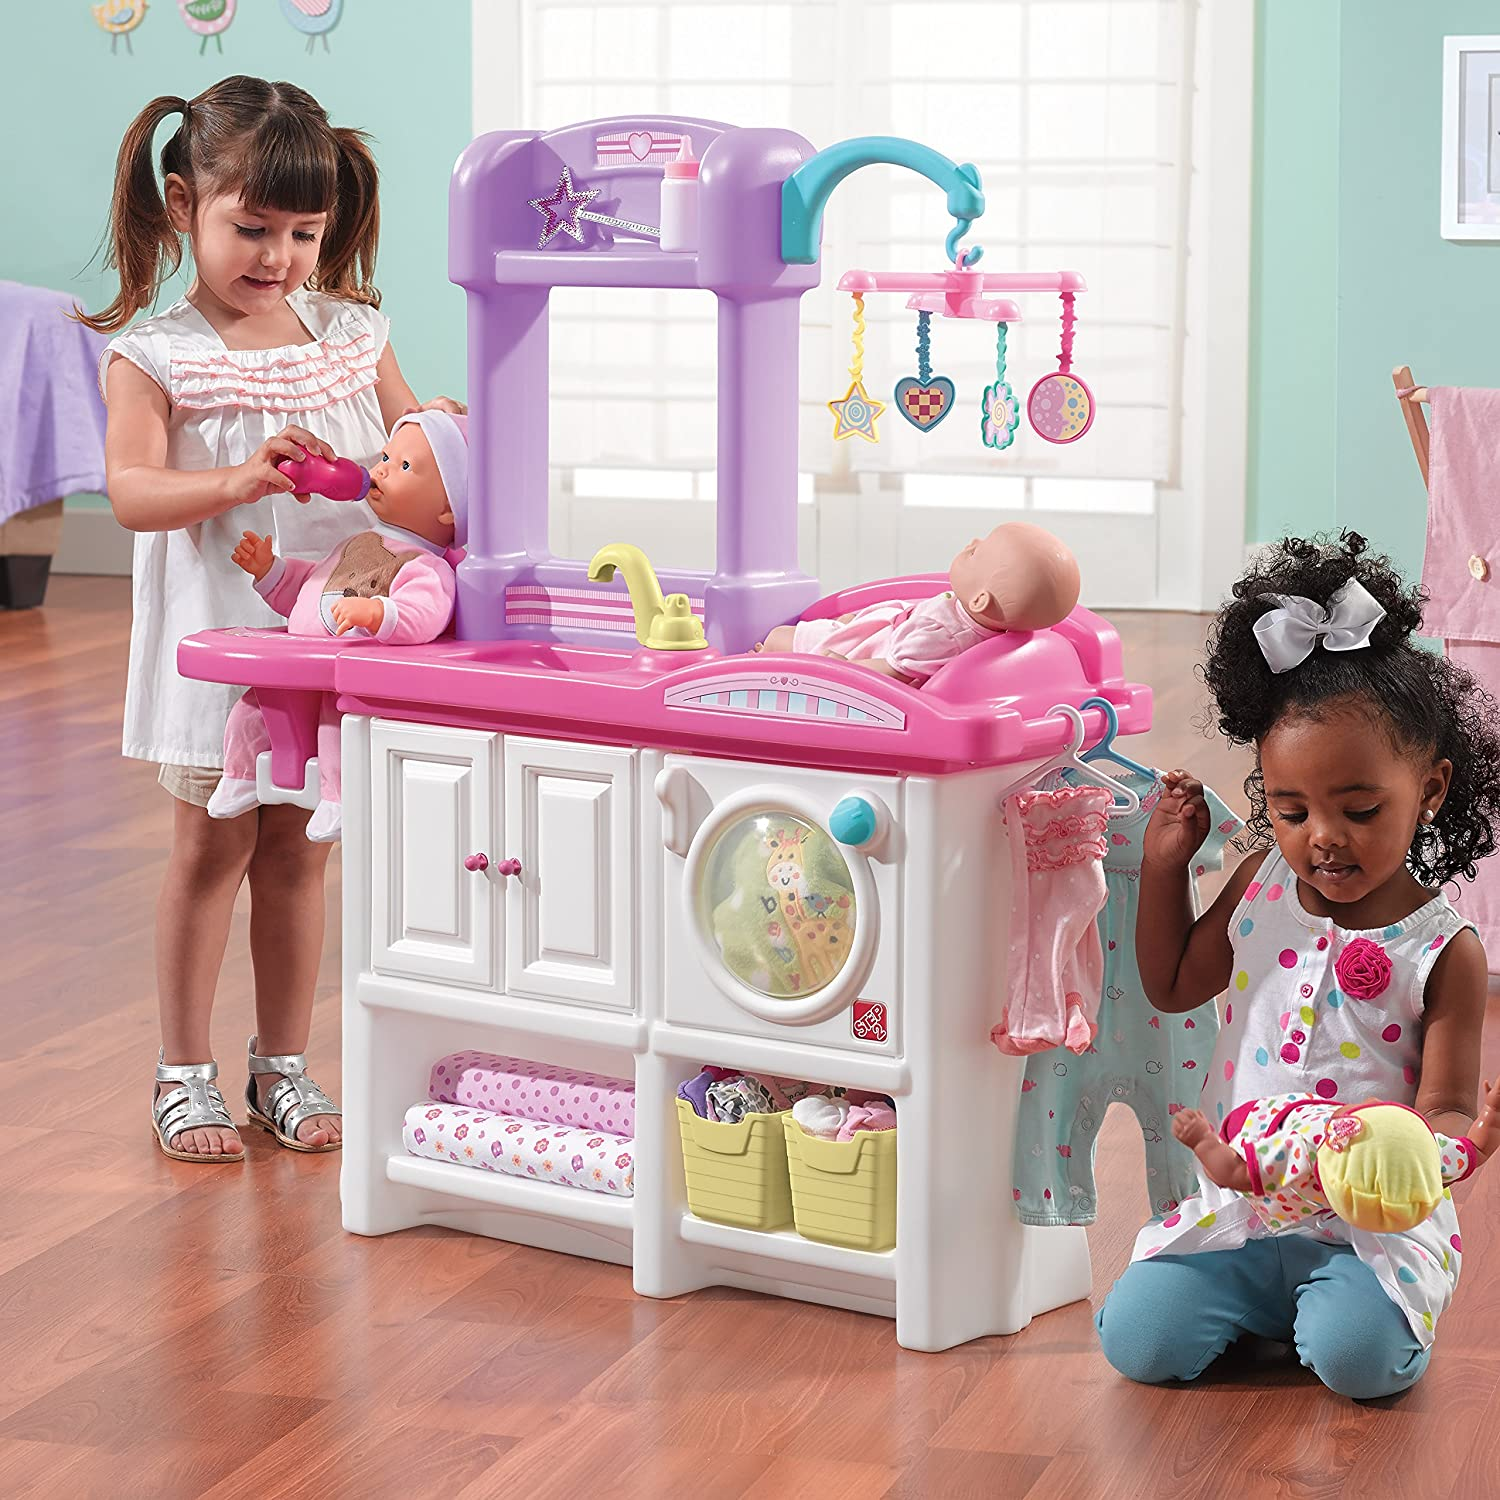 Toy baby doll changing table and crib amazoncom step2 love and care deluxe nursery playset toys games geotapseo Image collections